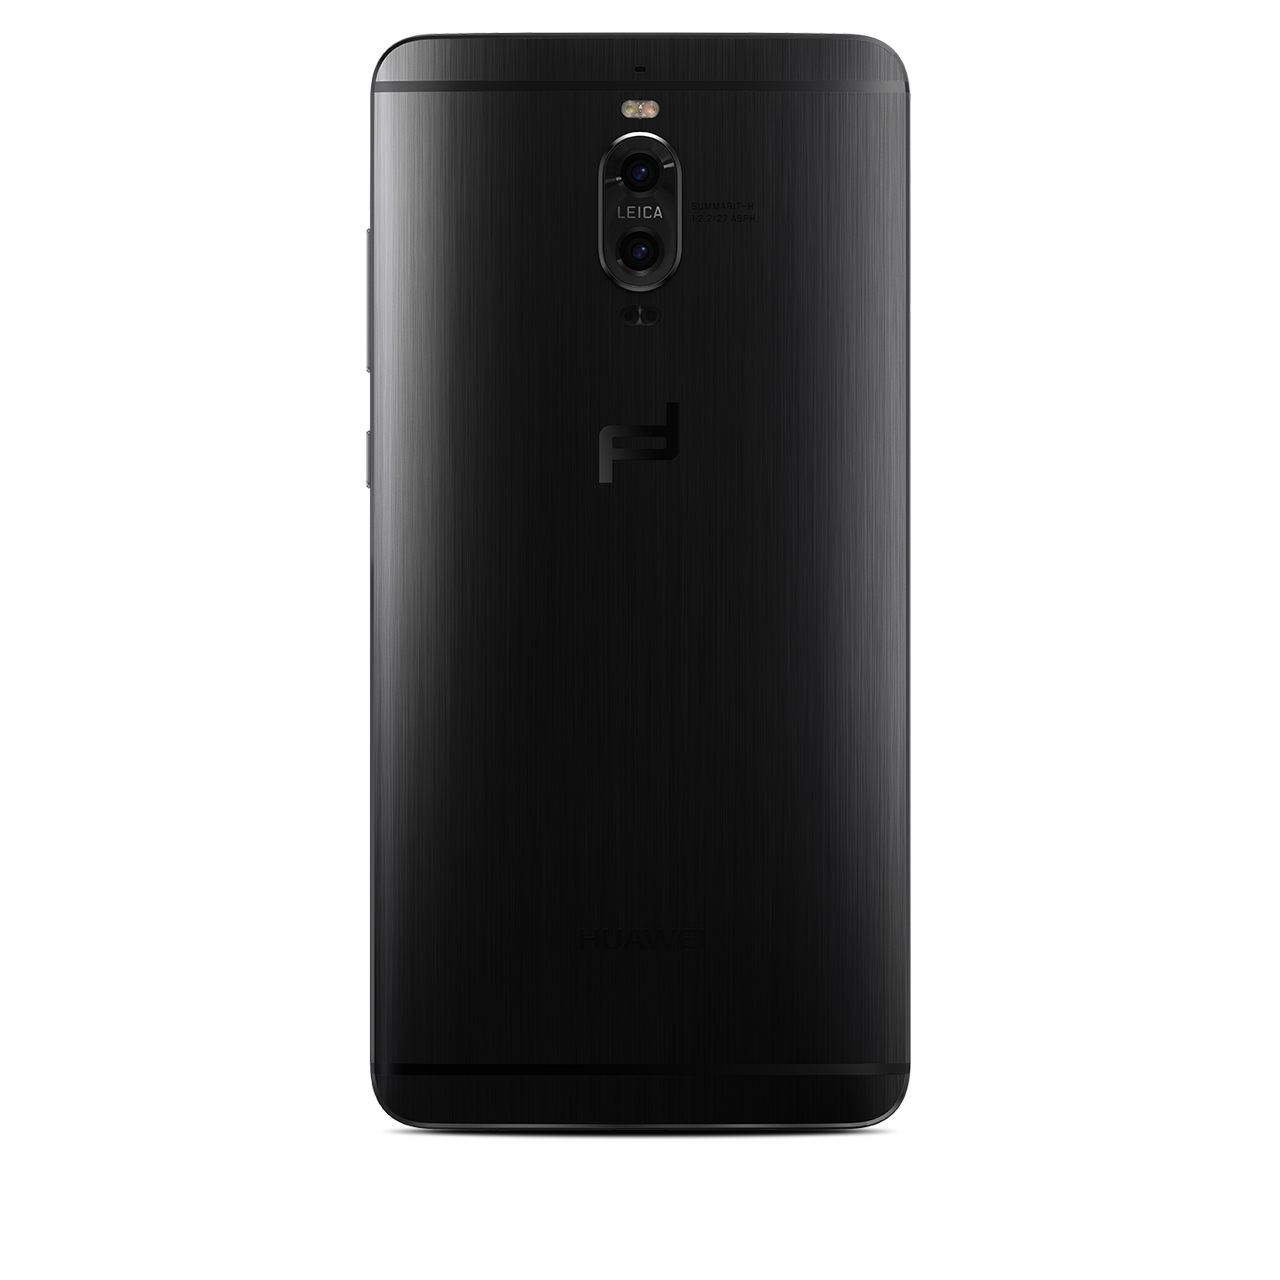 porsche design unveils new smartphone it 39 s a huawei mate 9 autoevolution. Black Bedroom Furniture Sets. Home Design Ideas